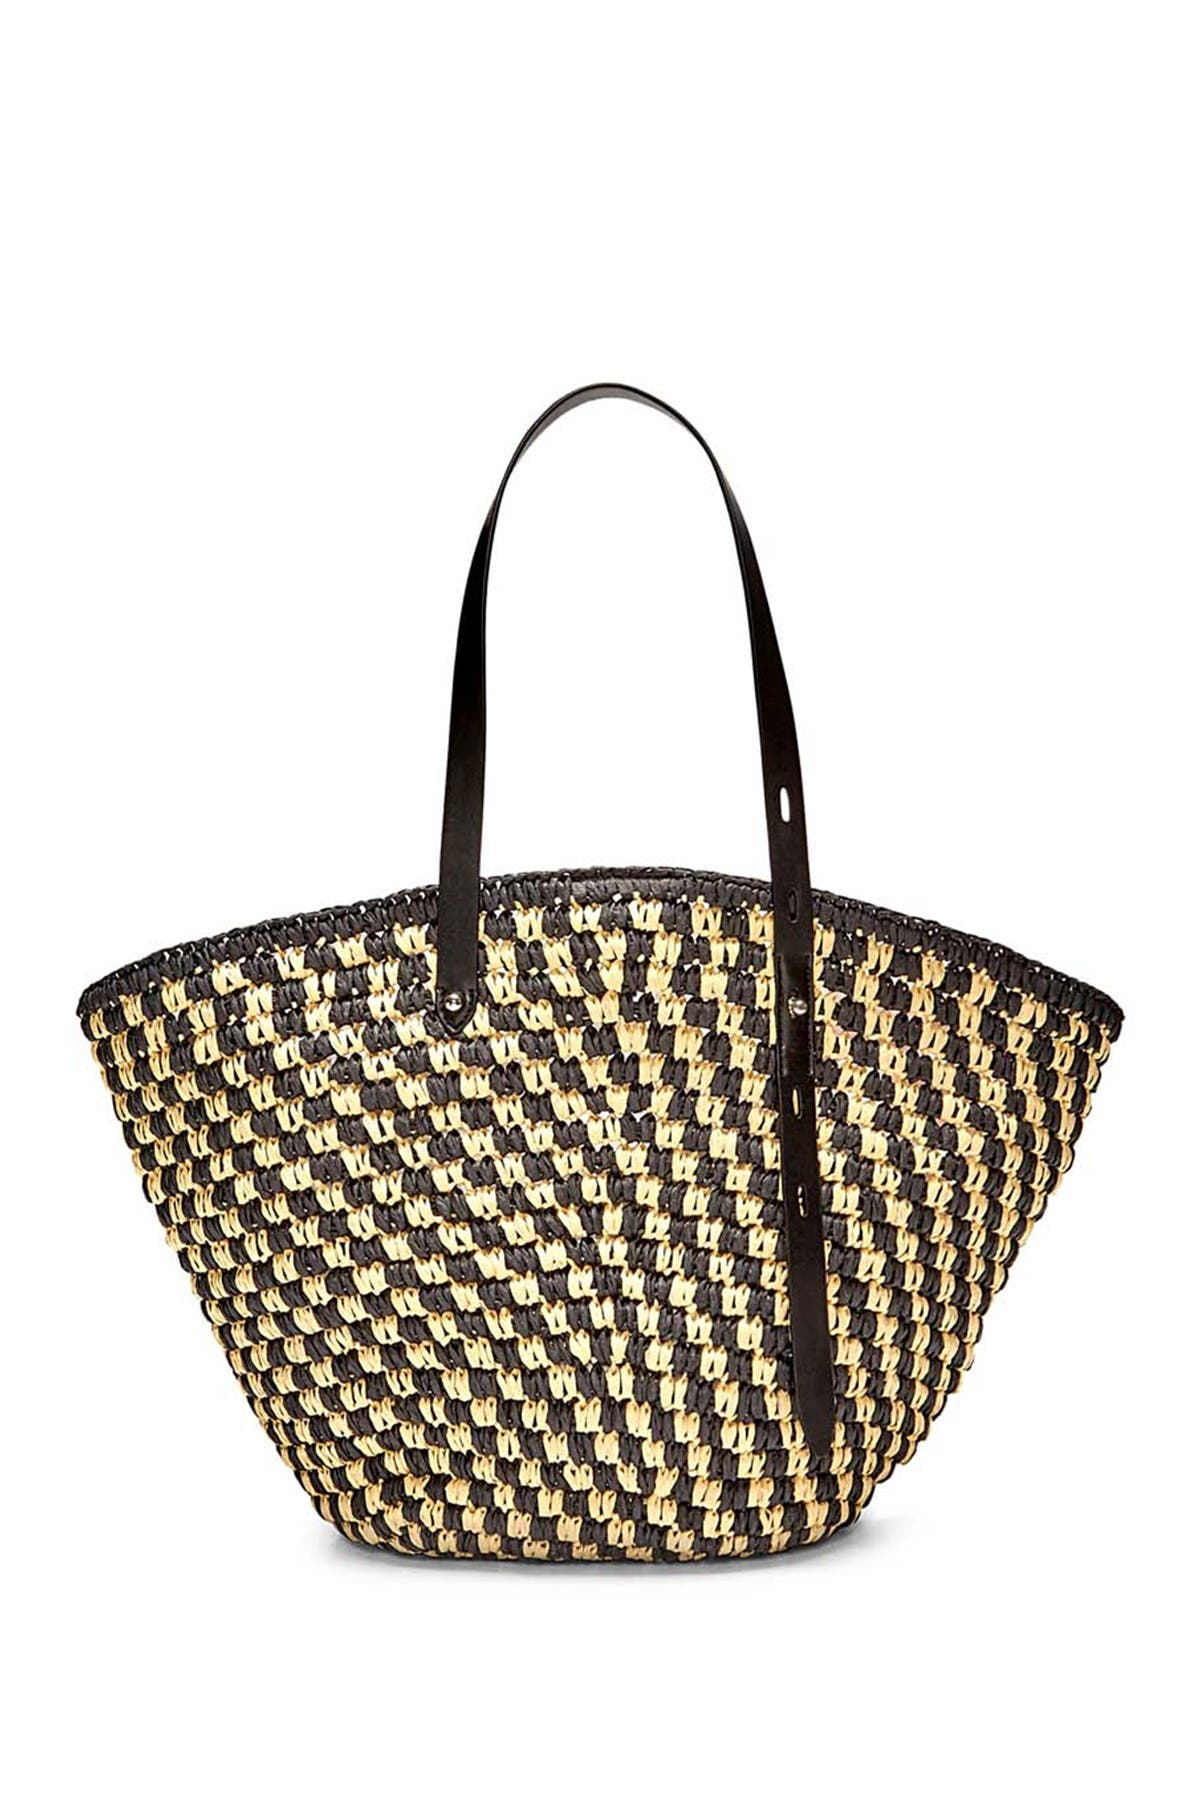 Image of Rebecca Minkoff Fan Woven Straw Tote Bag